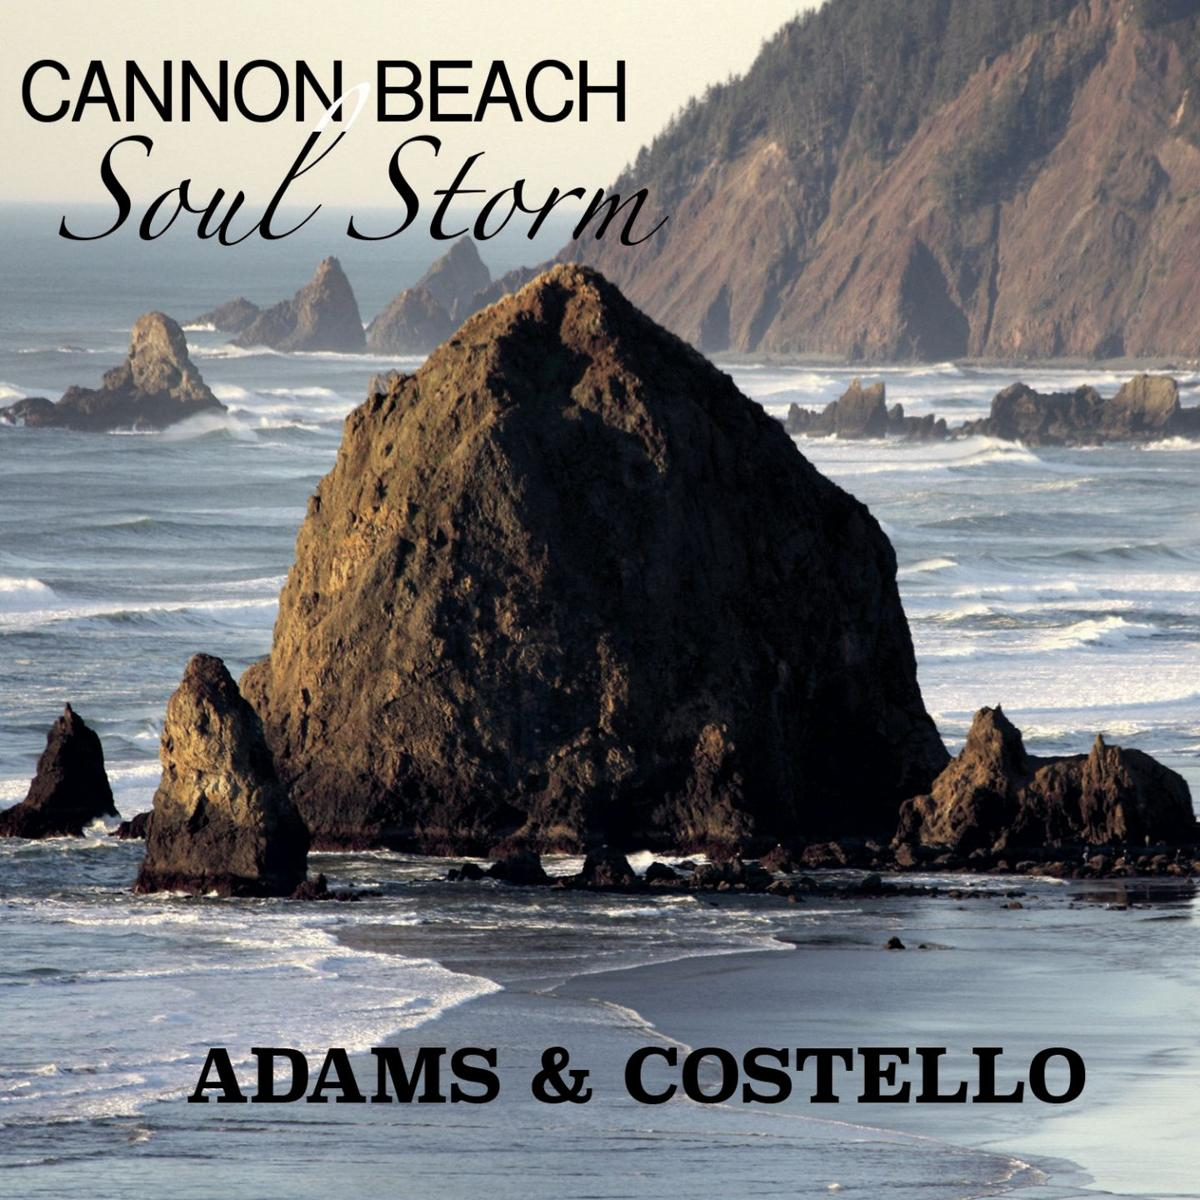 A love letter to Cannon Beach